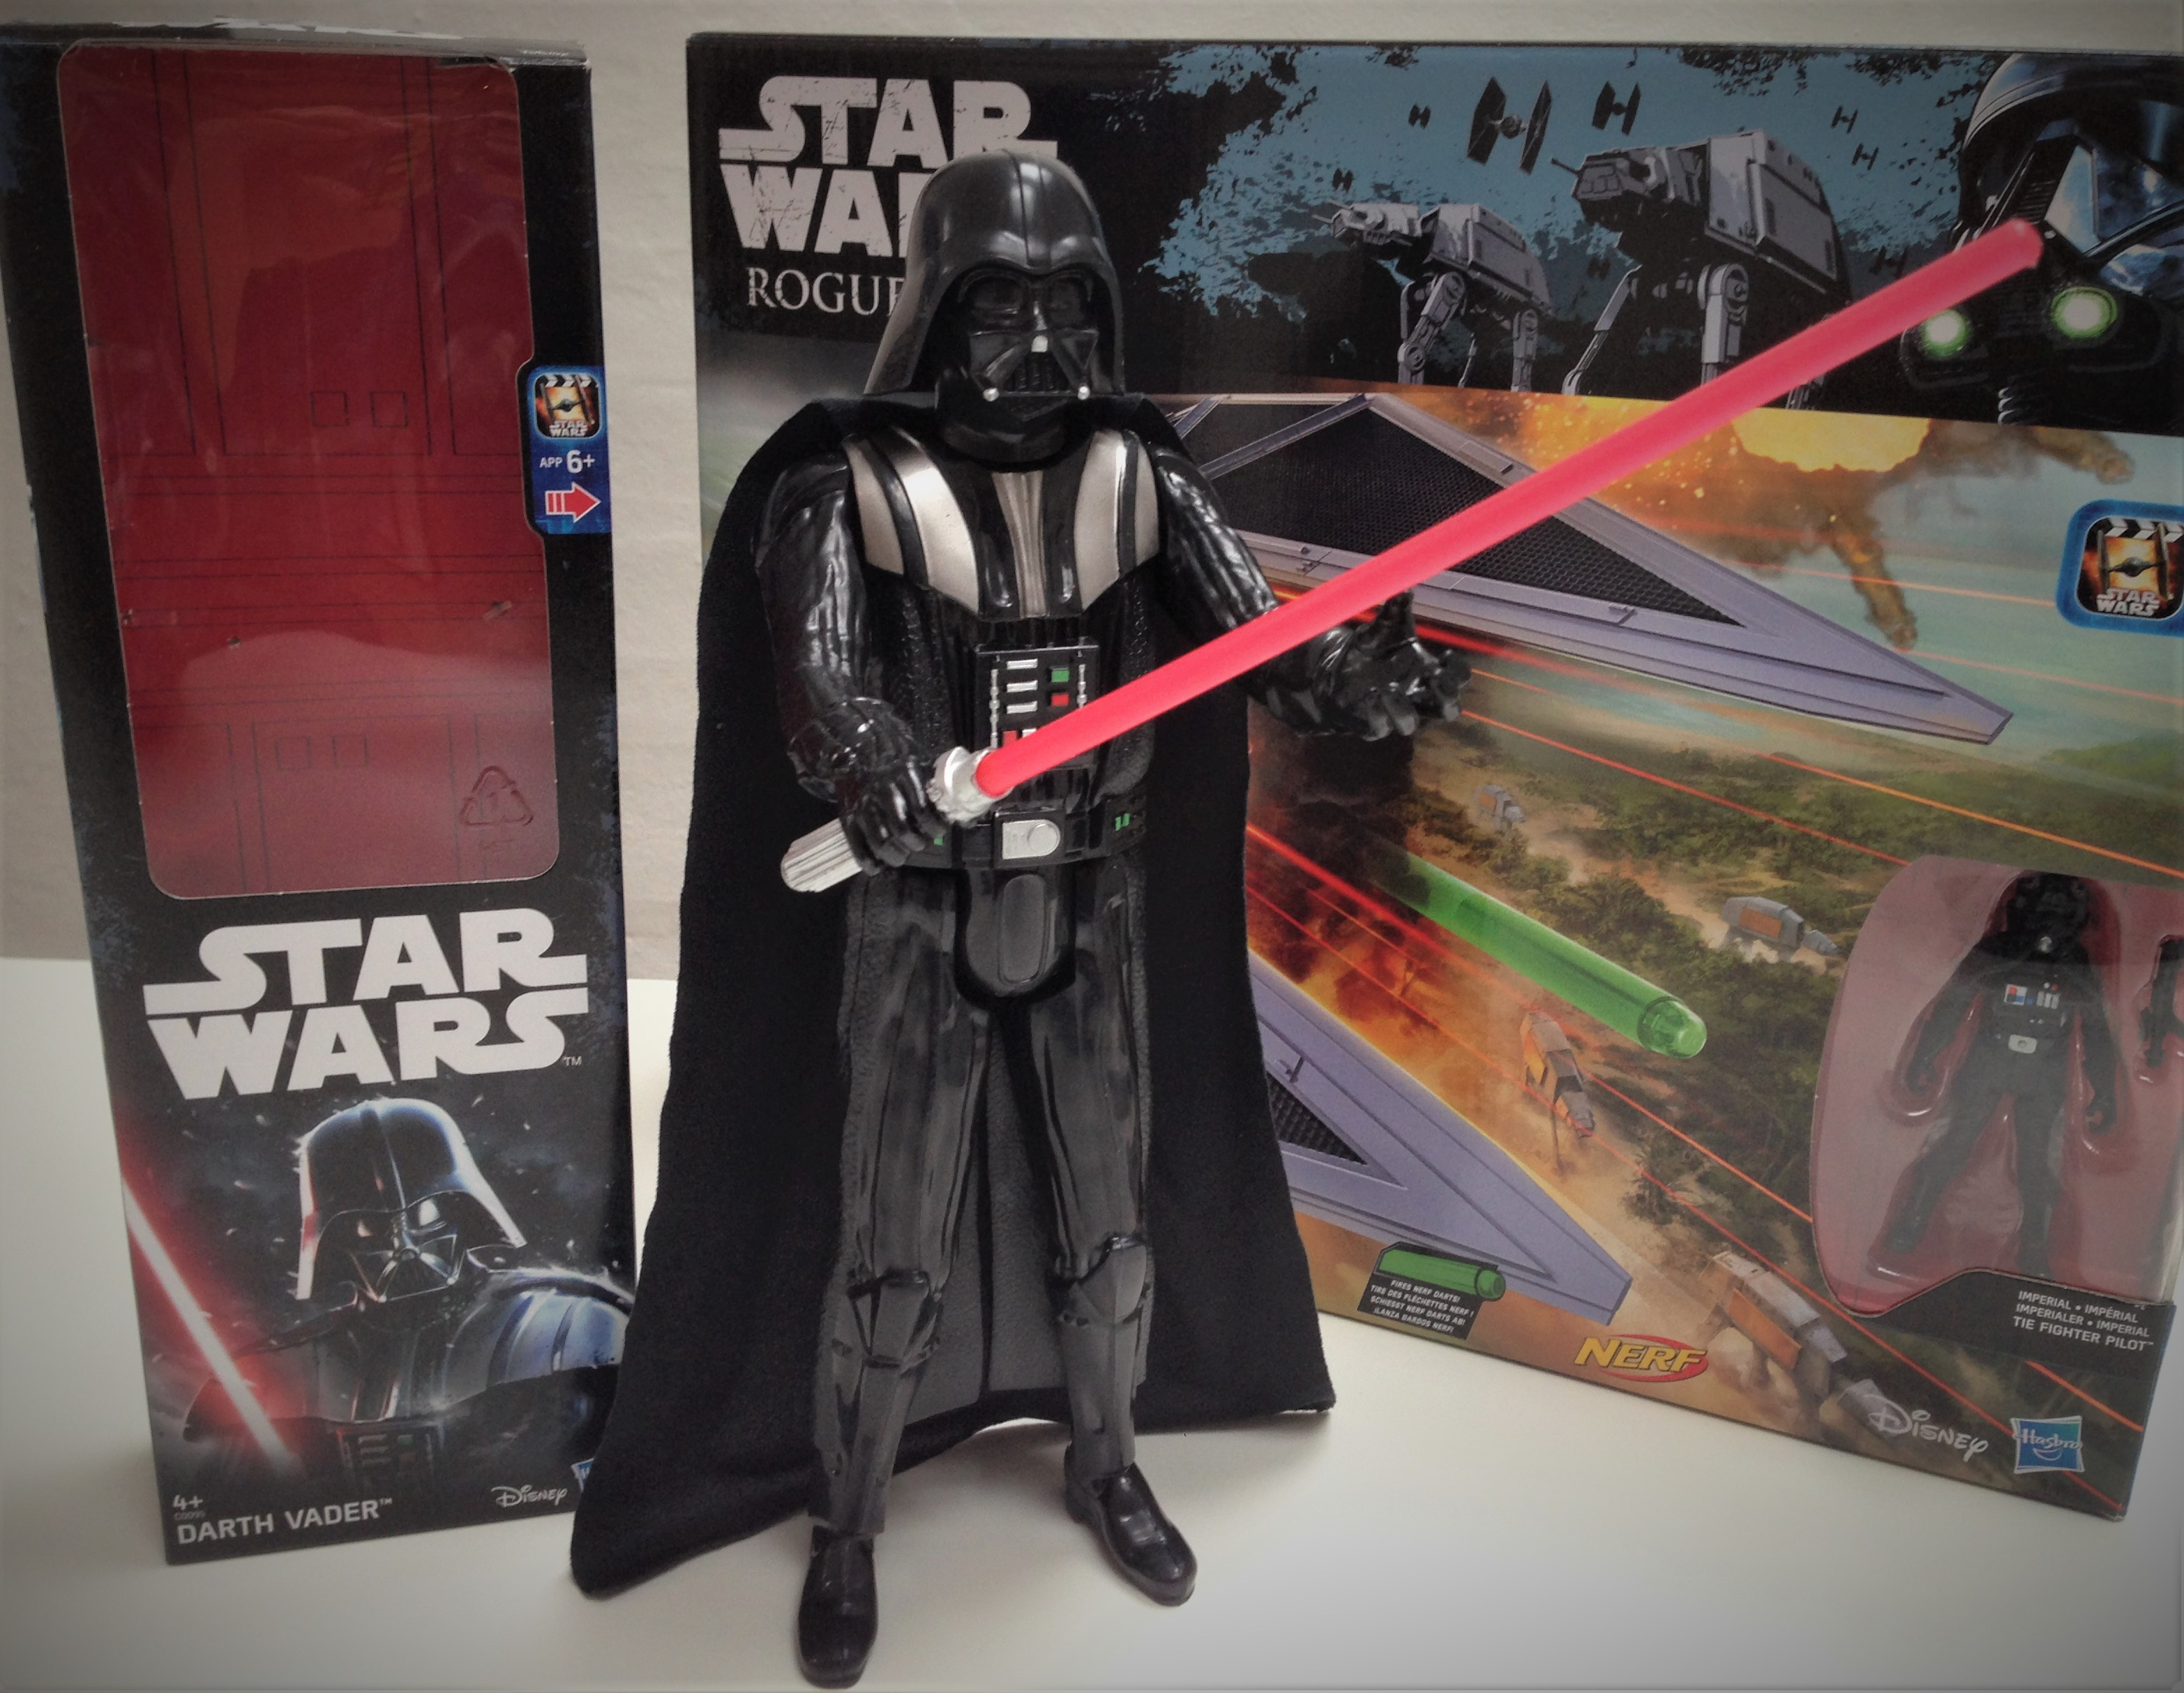 hasbro-fiktion-kultur-star-wars-rogue-one-a-star-wars-story-tie-striker-darth-vader-2